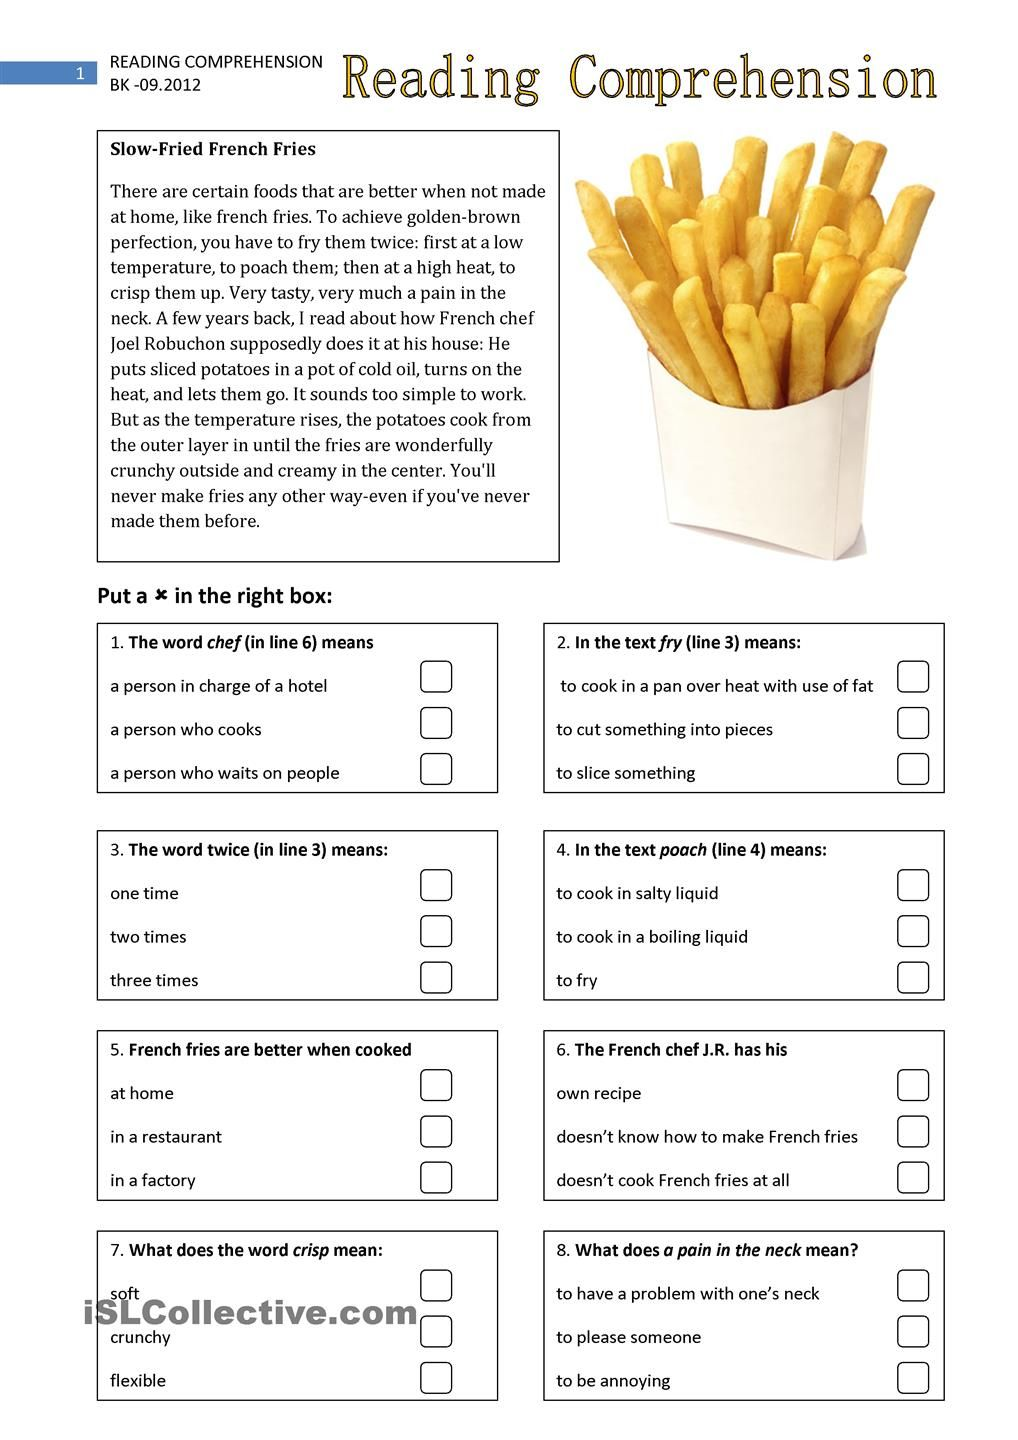 Worksheets Esl Reading Worksheets reading comprehension 2 practising worksheet free esl printable worksheets made by teachers